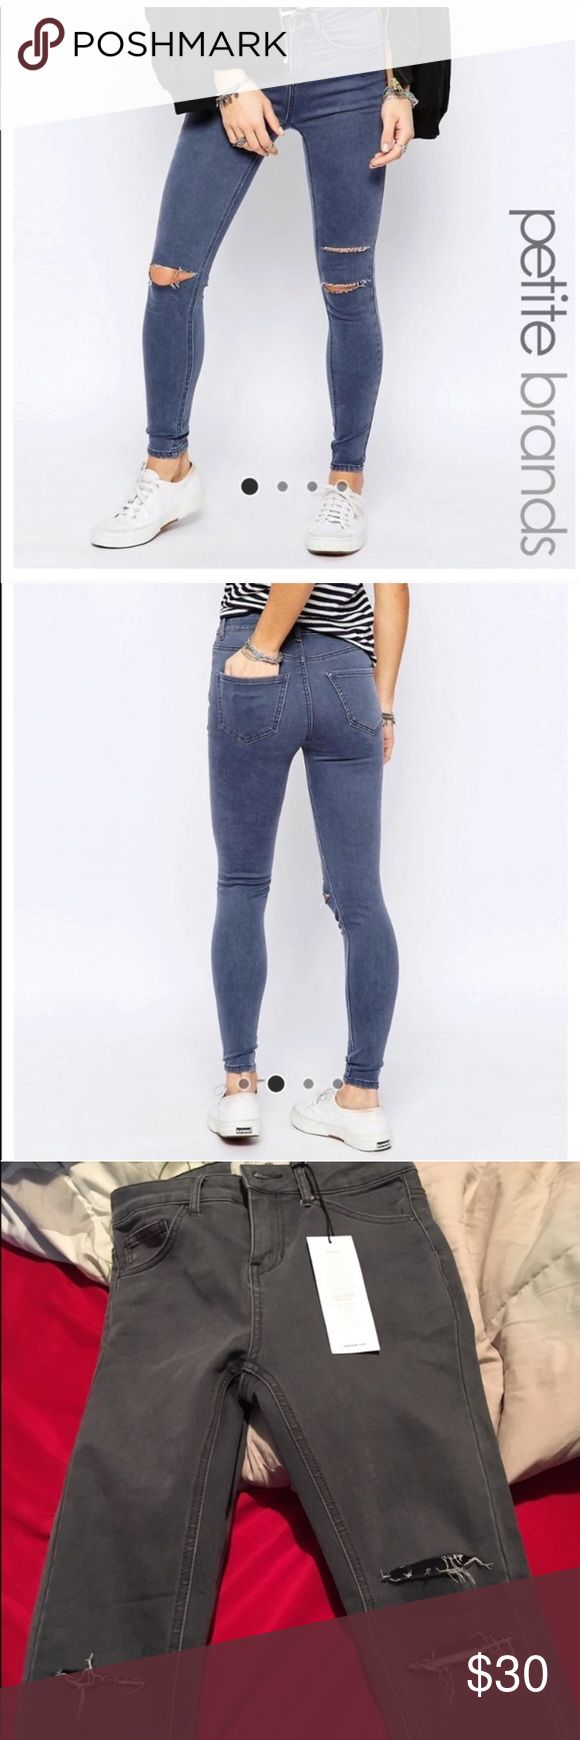 Asos jeans These are petite size 6 super cute I bought this size not knowing they were stretch so they're a little big on me. Open to offers! ASOS Pants Skinny